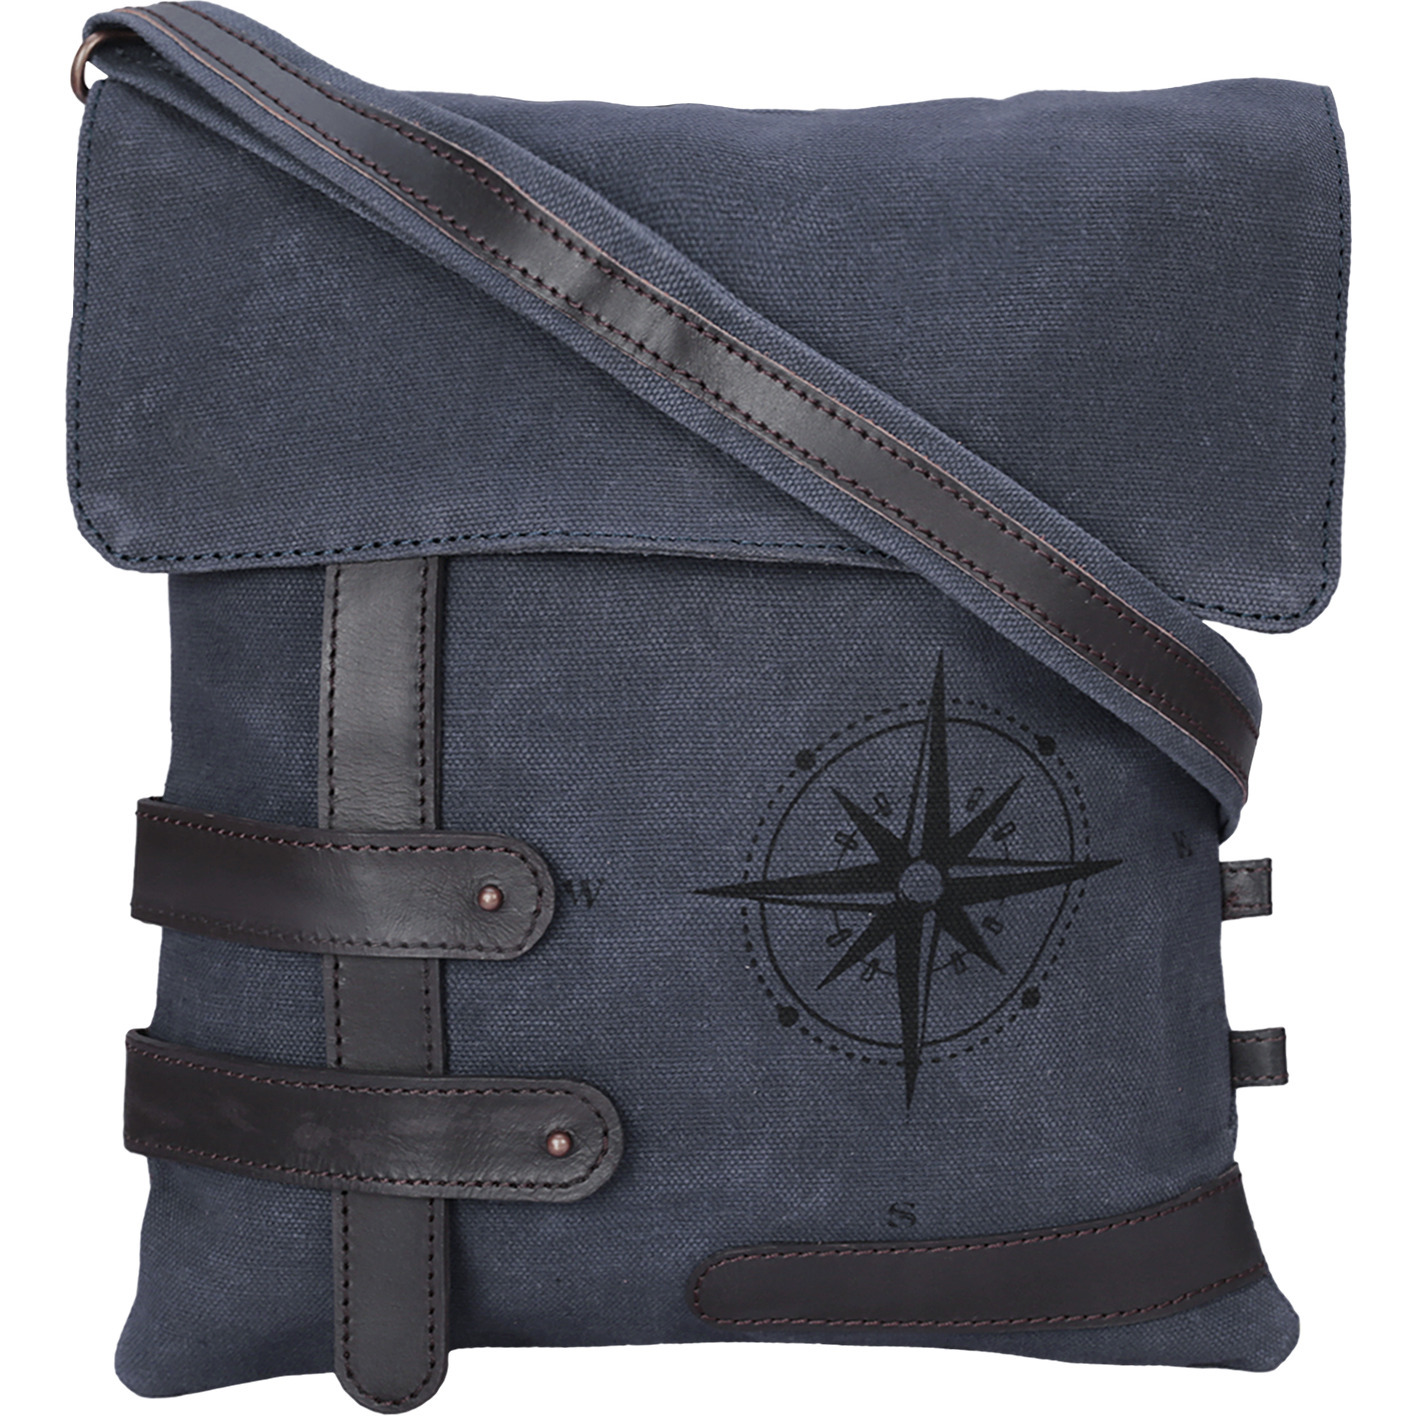 NEUDIS Genuine Leather & Recycled Stone Washed Canvas Travel Sling / Cross Body Bag for iPad & Tablet - Compass - Blue